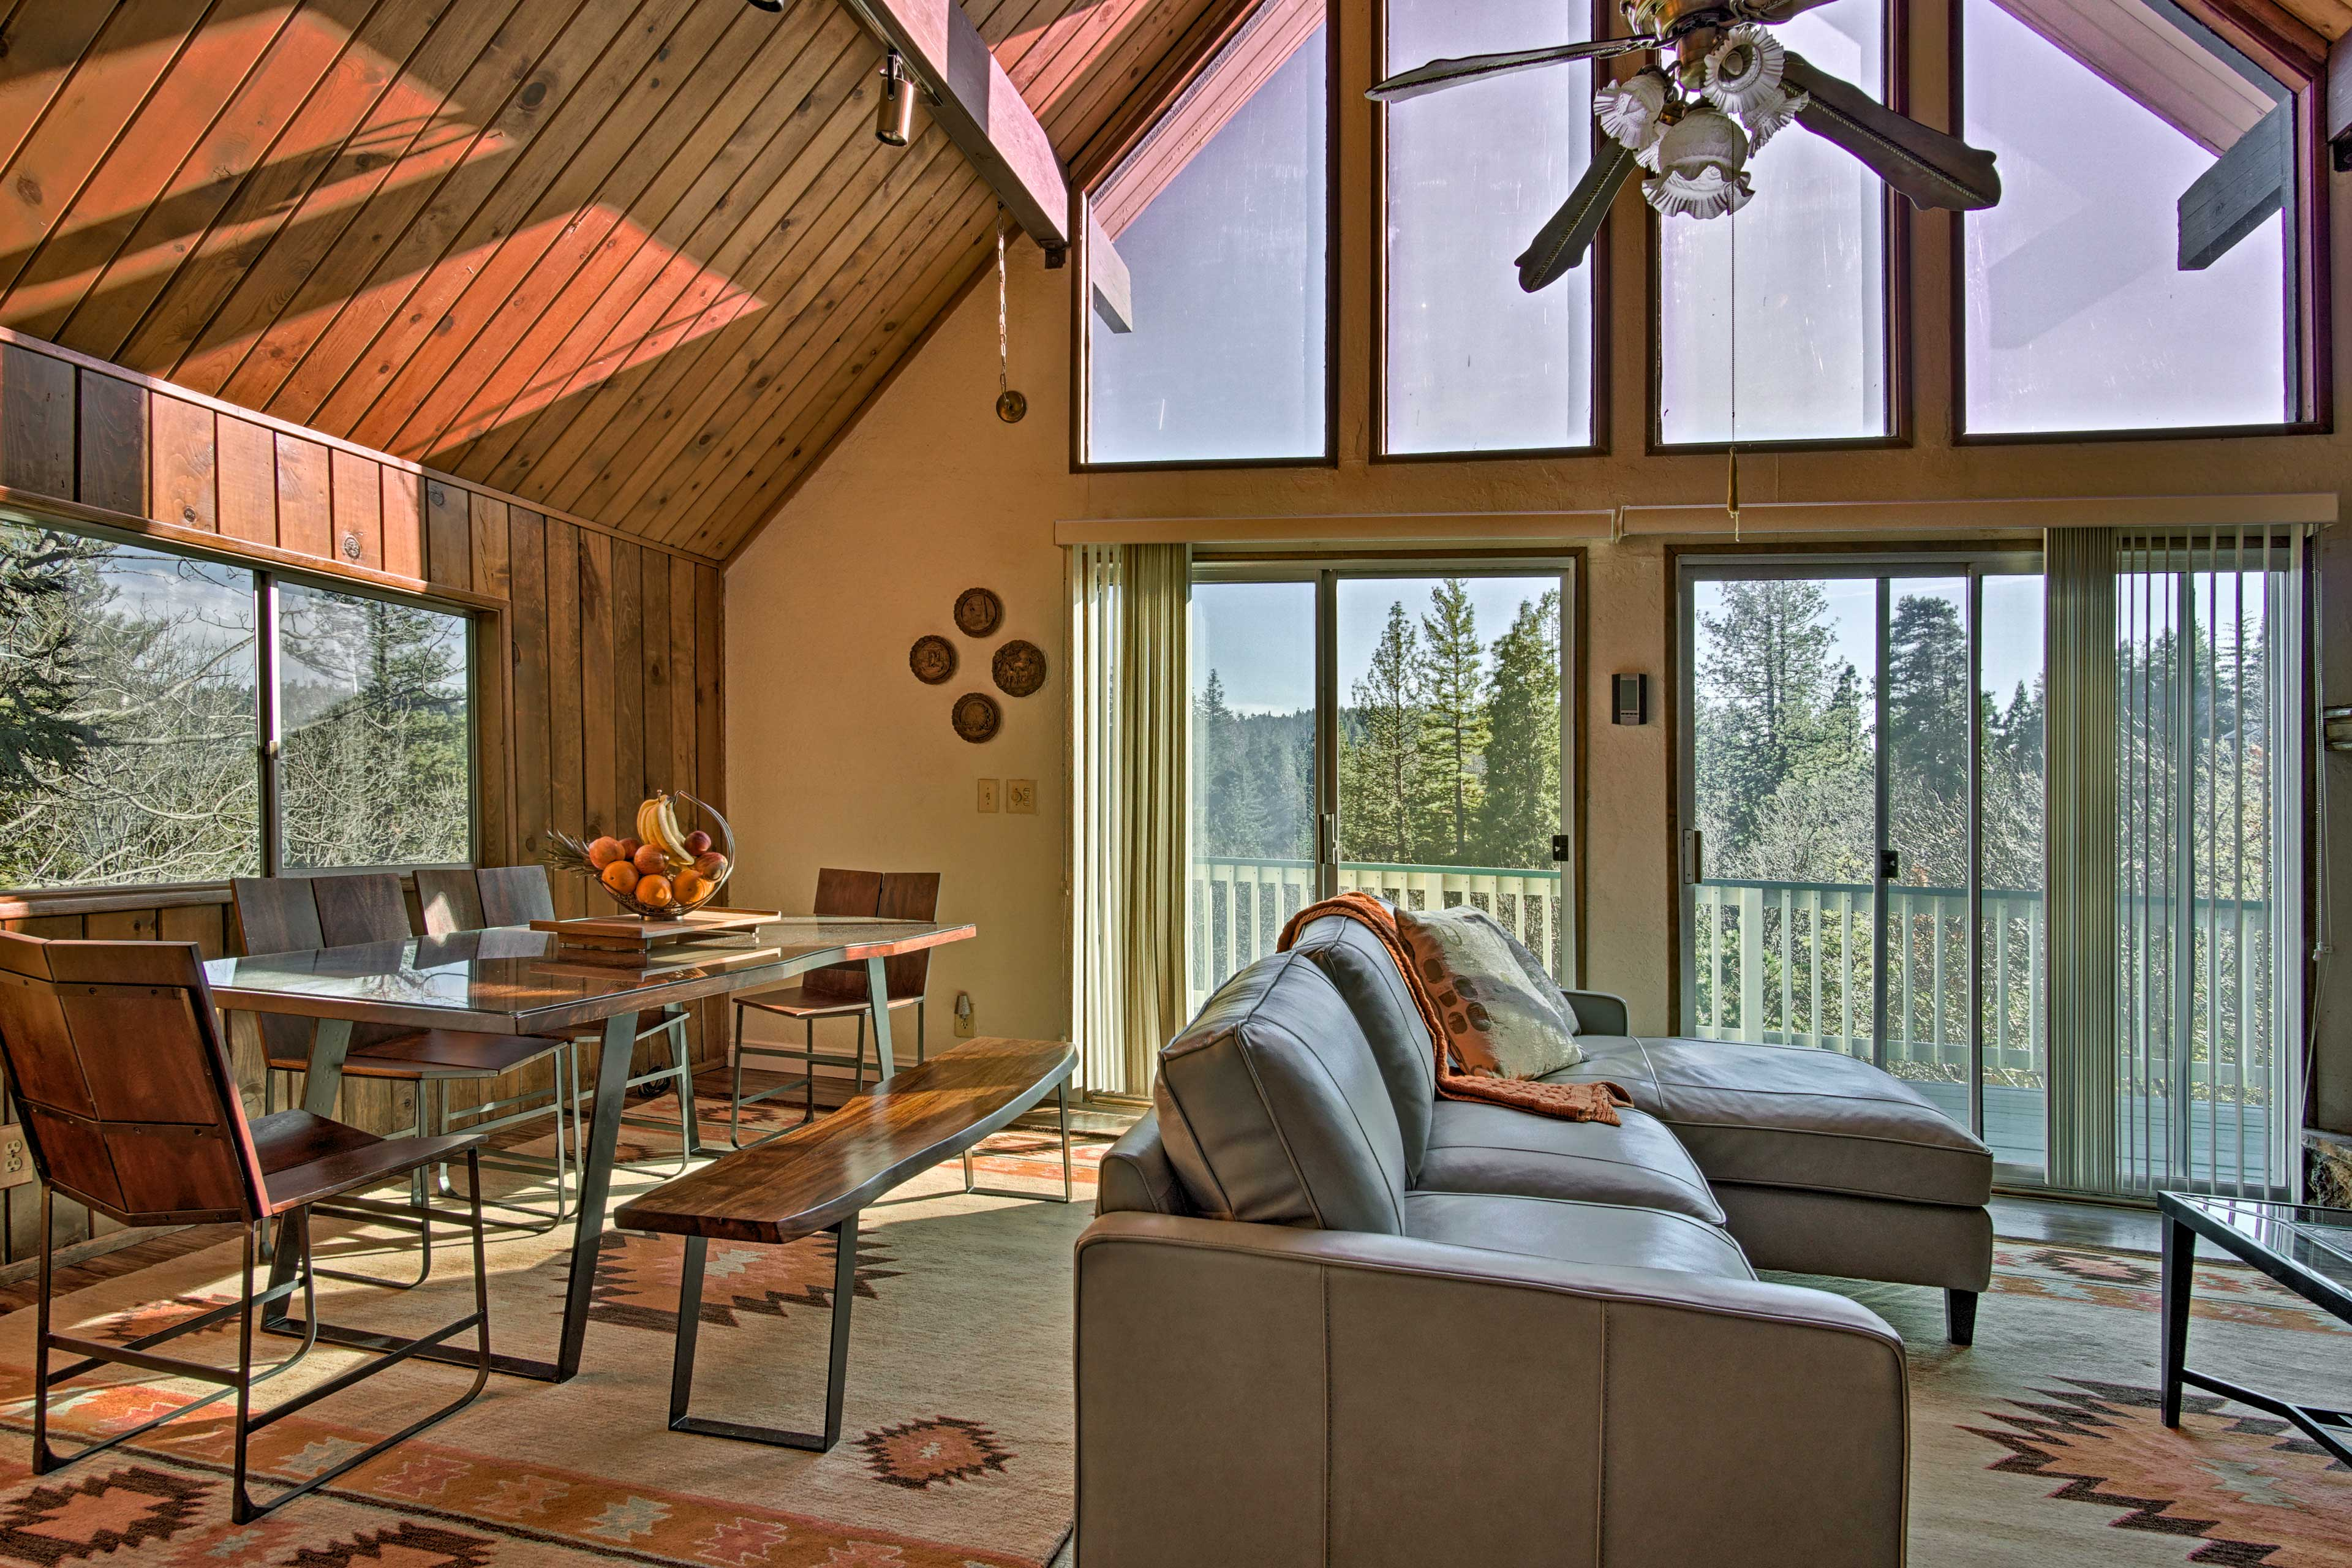 Share home-cooked meals under natural light flooding through A-frame windows.